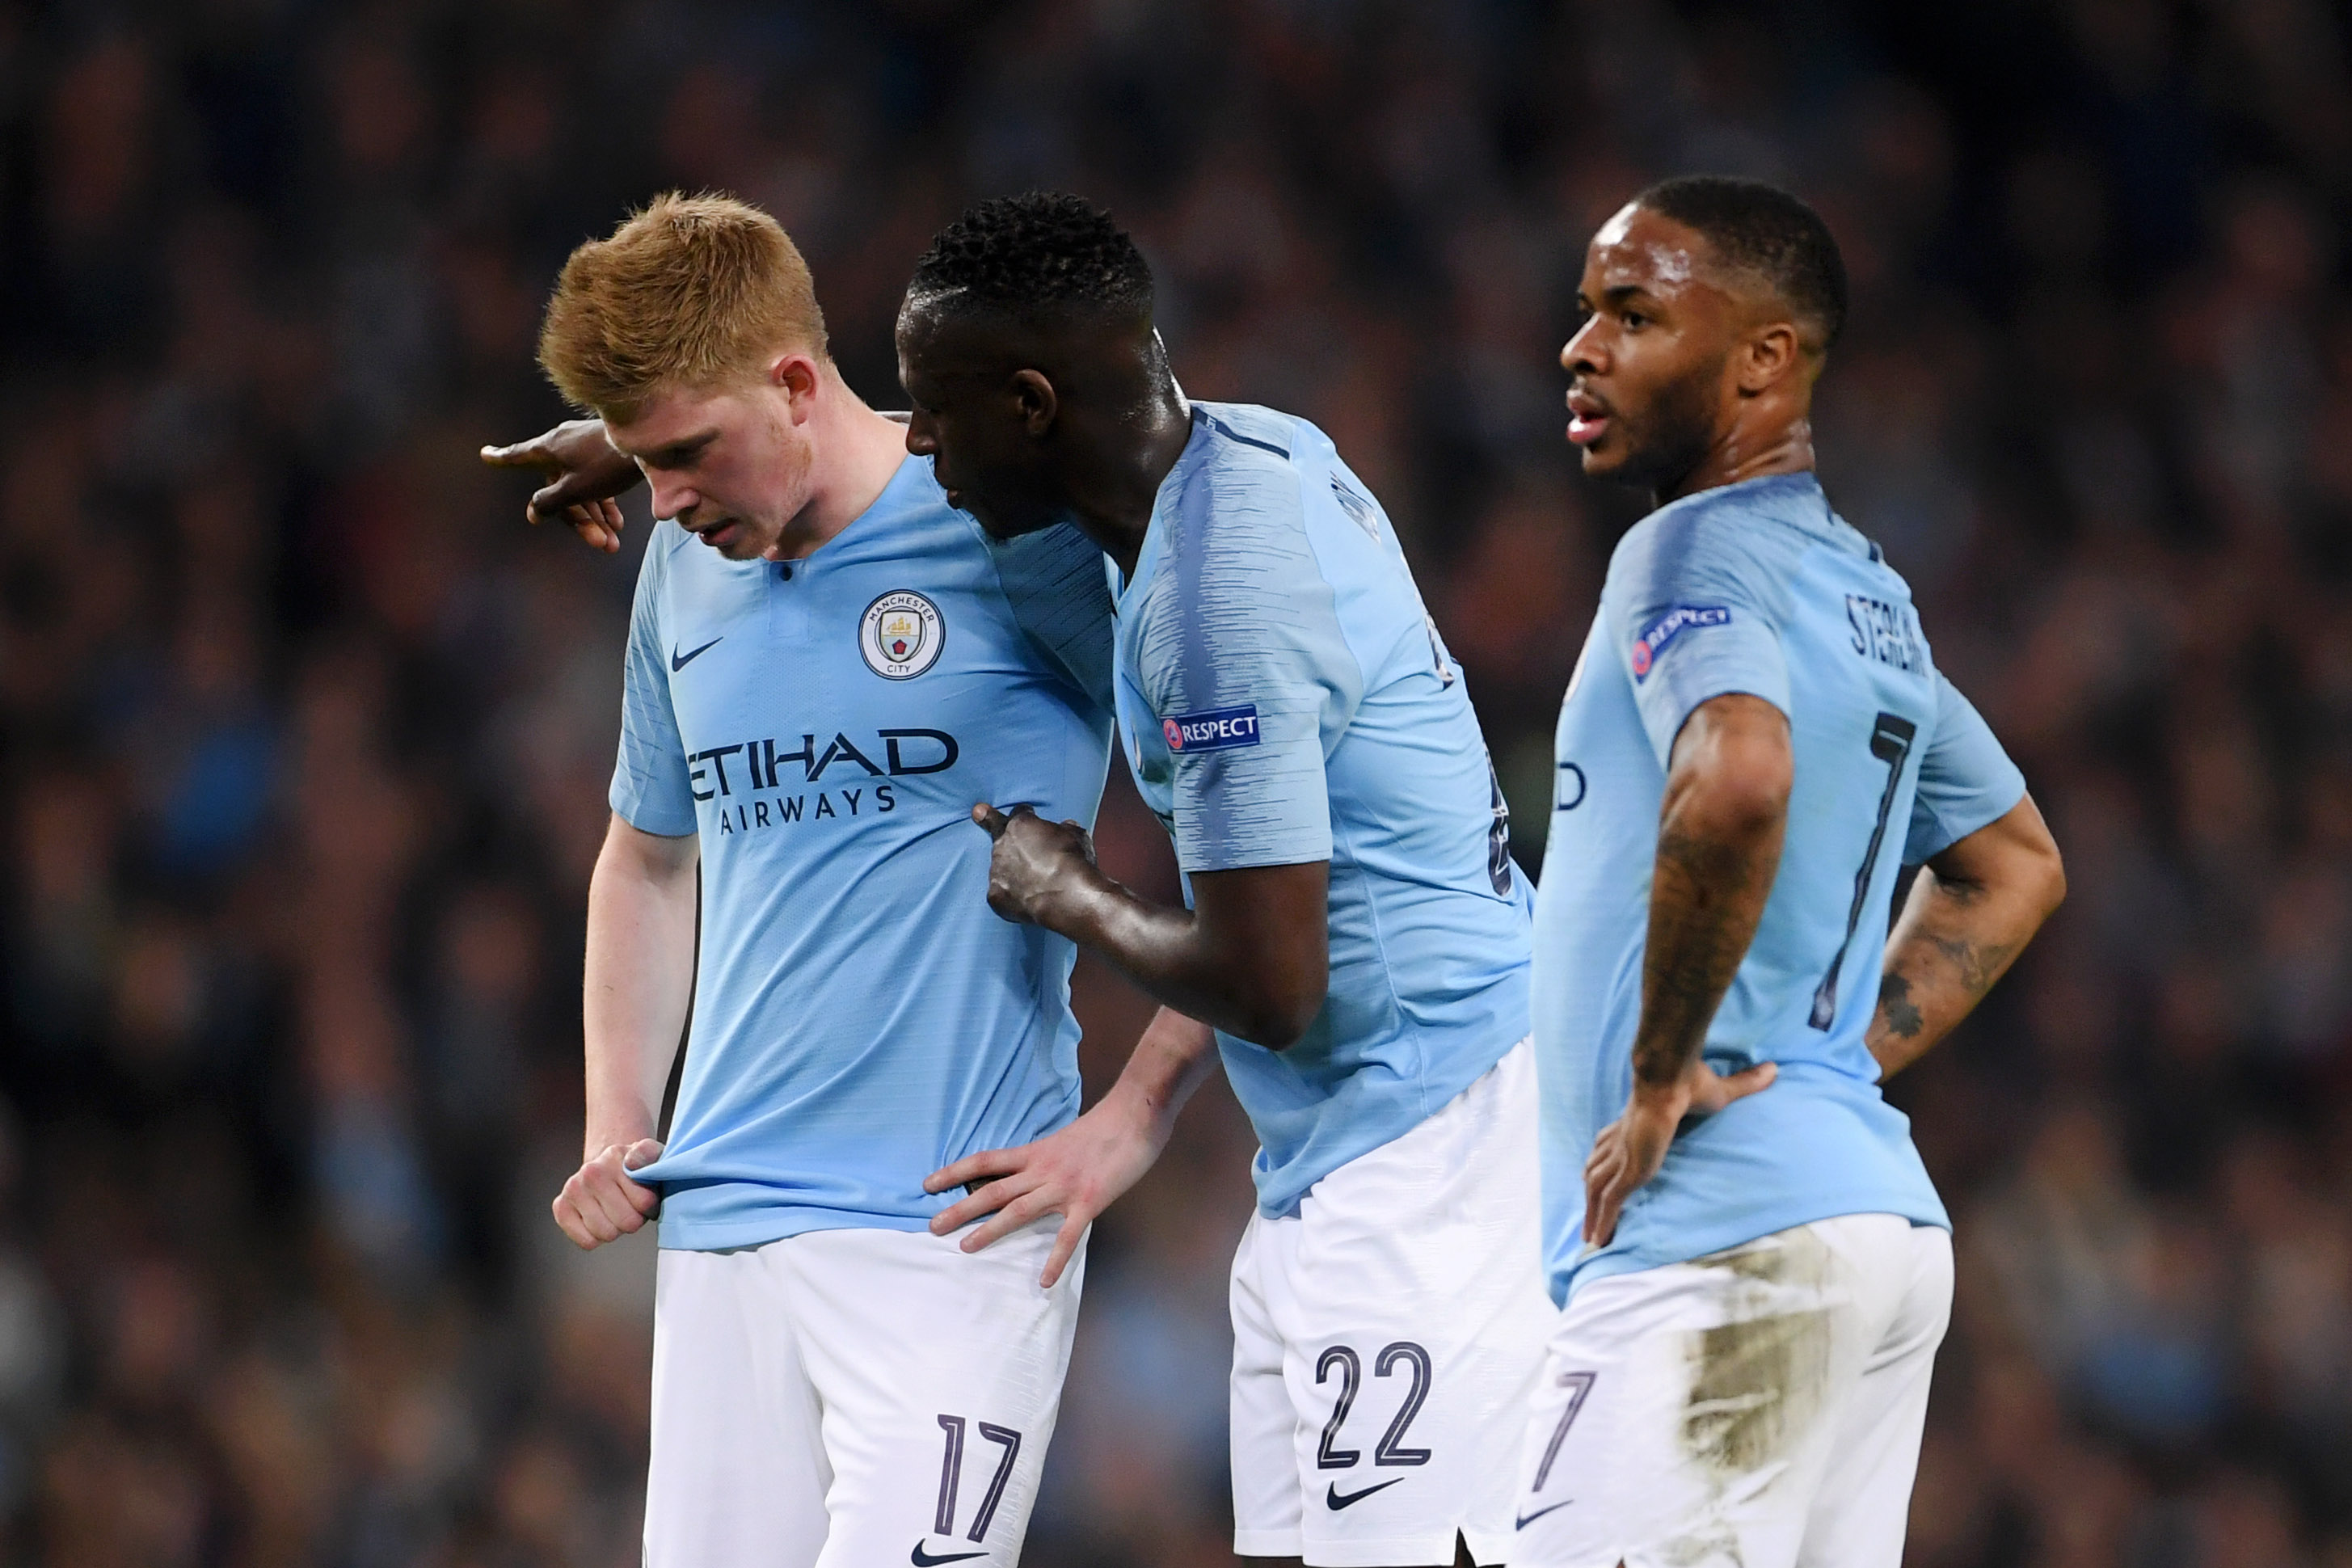 Premier League 2019 odds: Matchweek 35 betting lines and trends